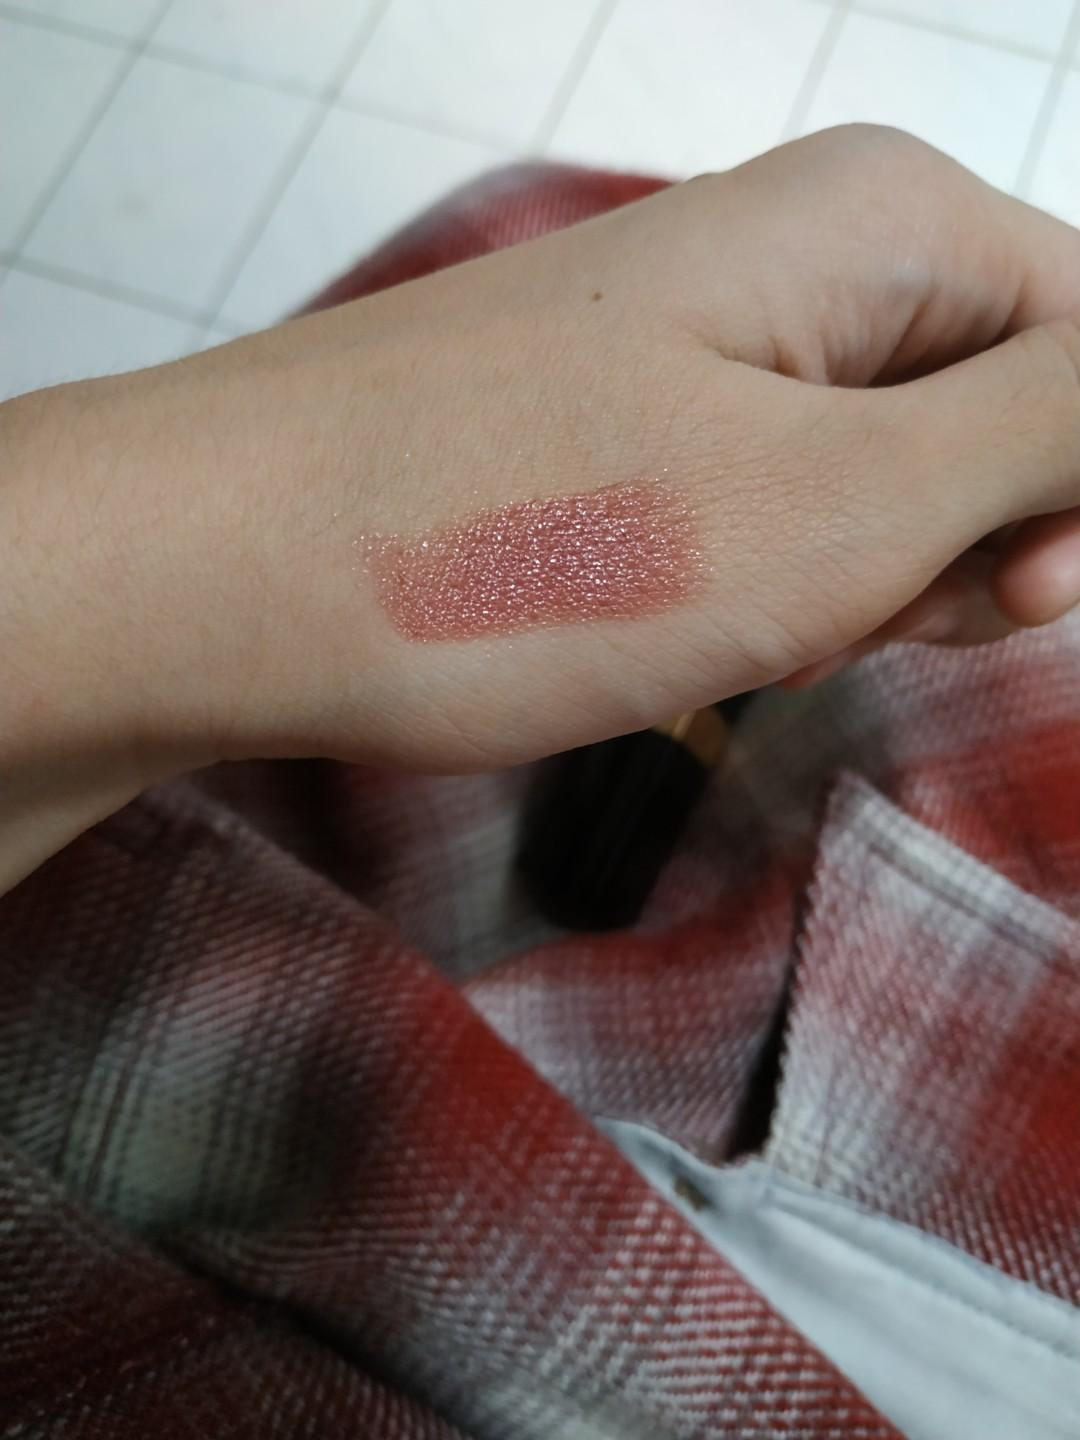 Chanel Rouge Coco Mademoiselle 434 Lipstick